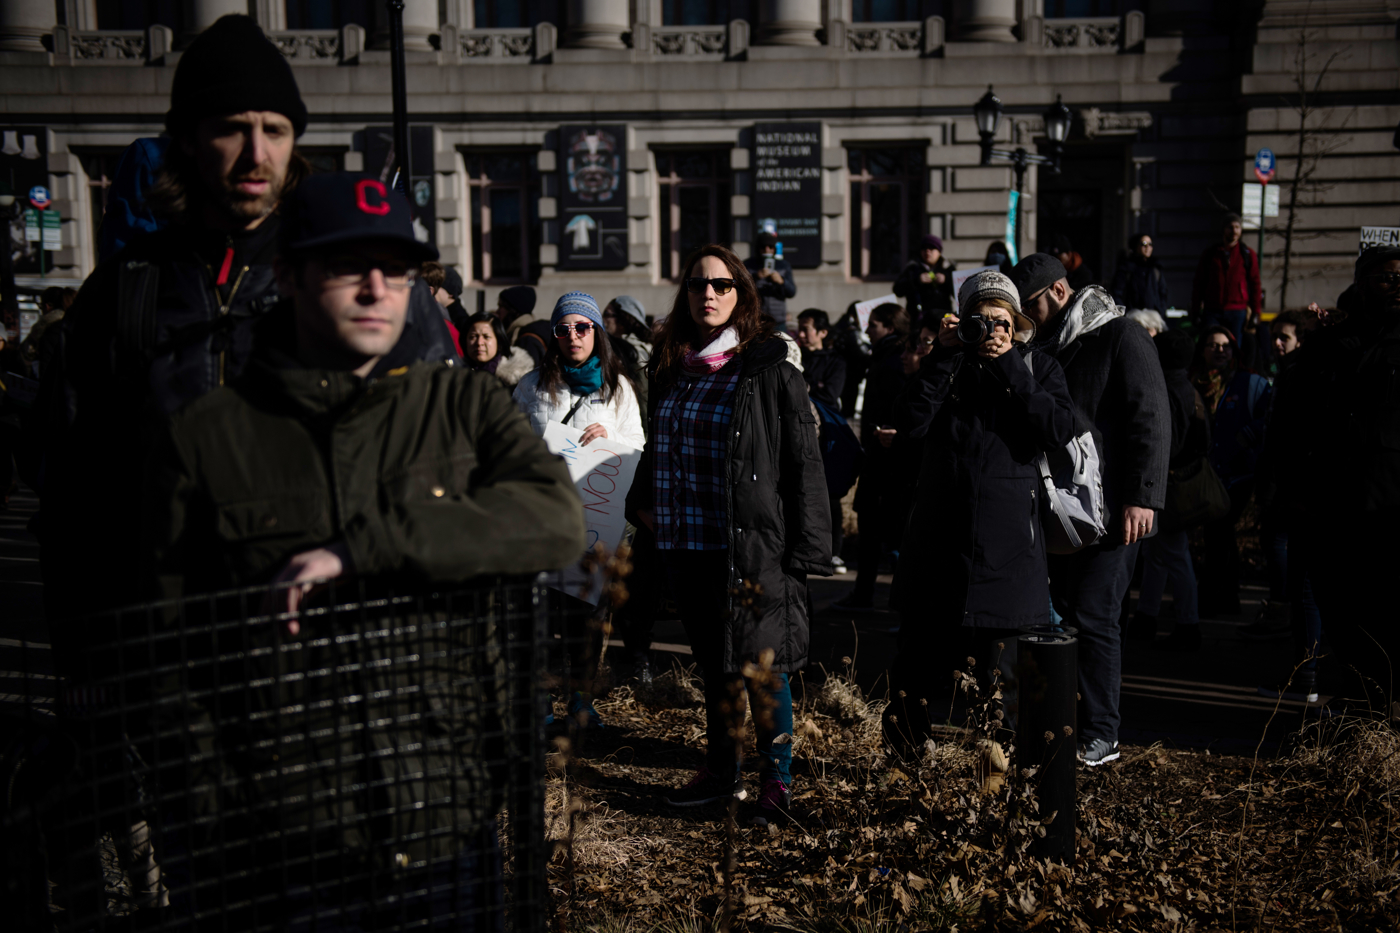 People stand as they wait for a march to begin from Battery Park to Federal Plaza in the Manhattan borough of New York, NY on Saturday, January 29, 2017. Credit: Mark Kauzlarich for CNN